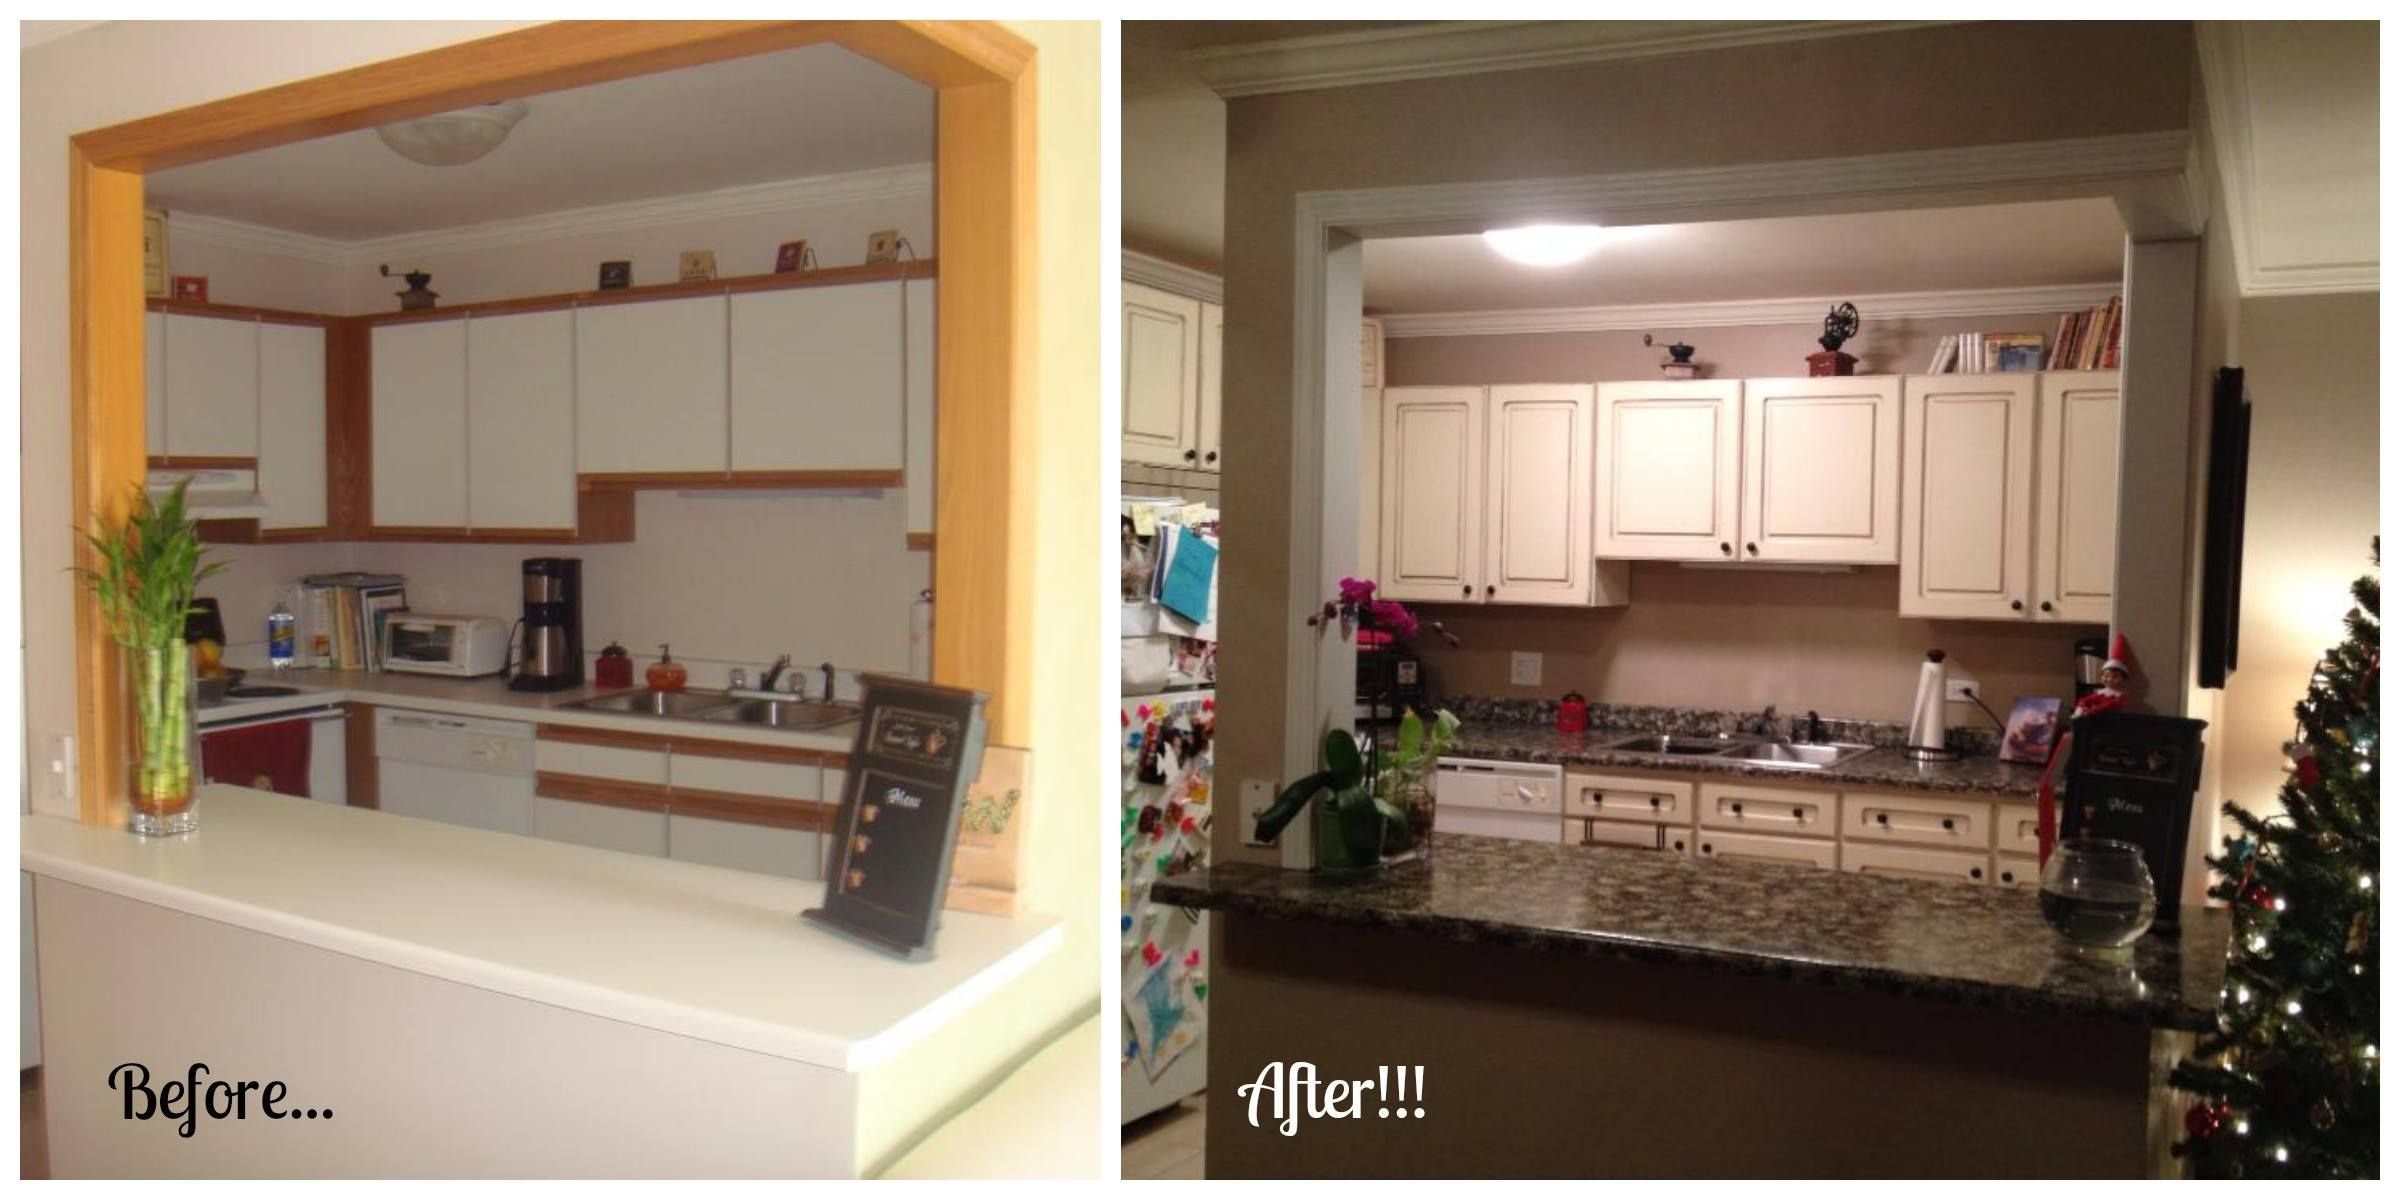 Before and after giani granite transformation using the for Painting kitchen countertops before and after